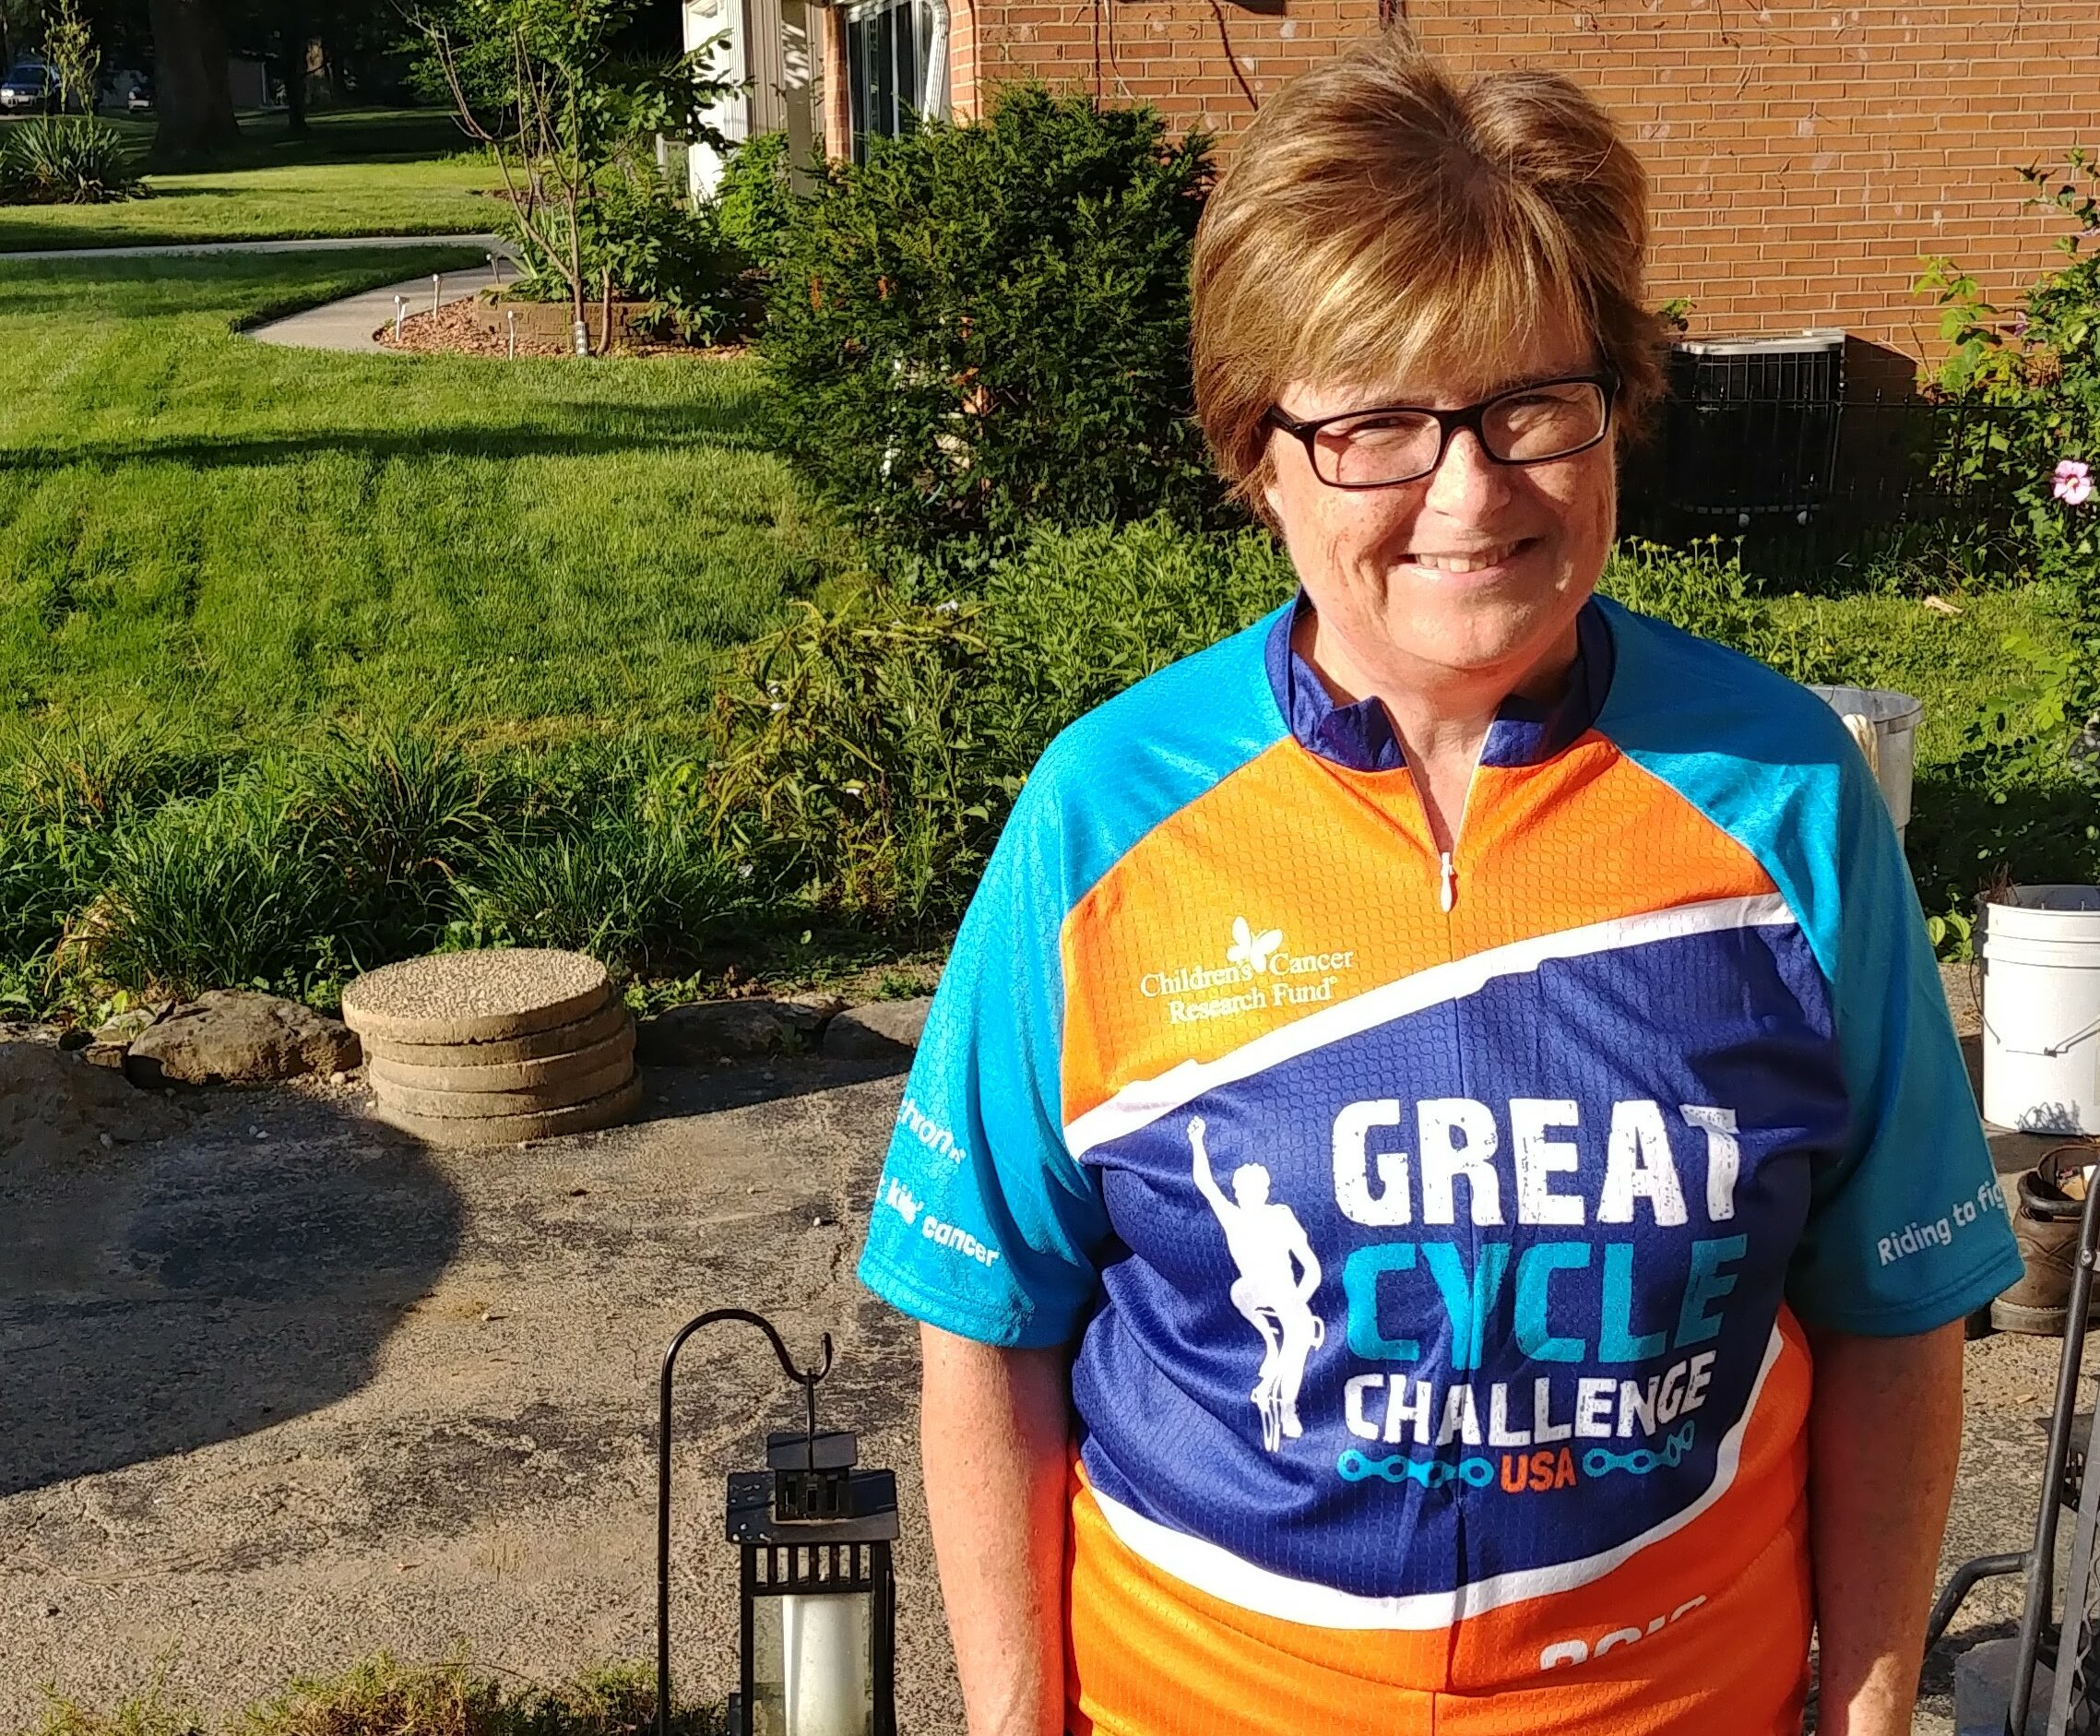 Ep 134: Colleen with the Great Cycle Challenge